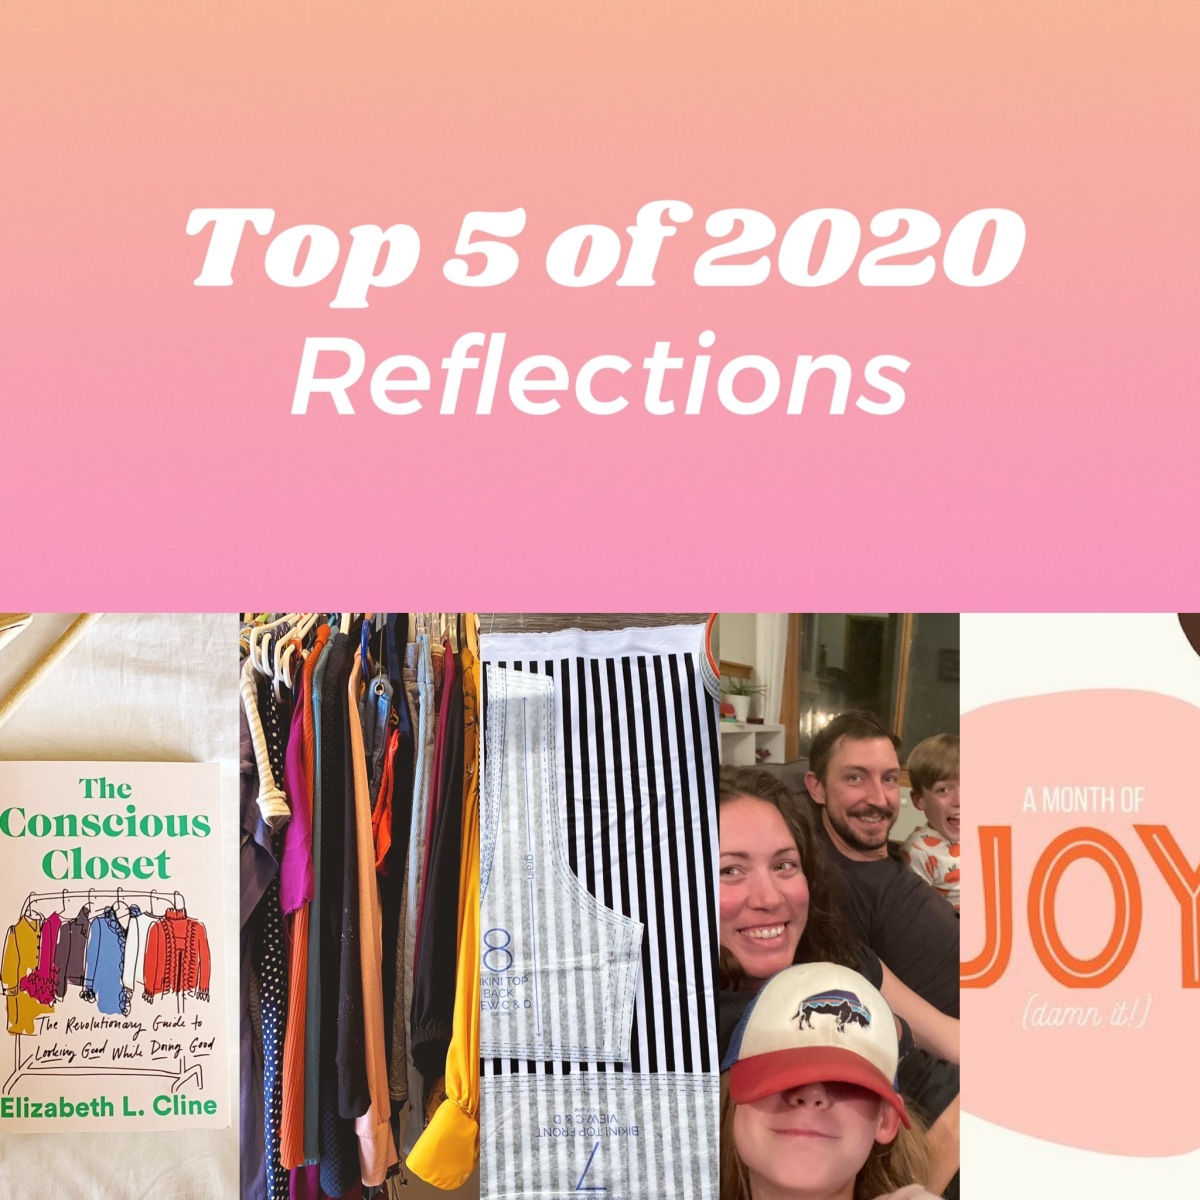 Top 5 Reflections